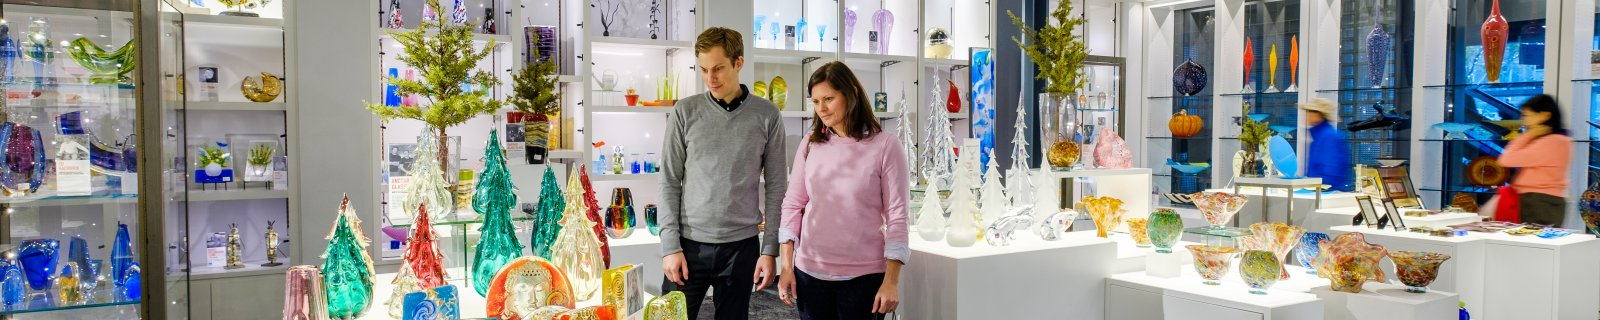 A man and woman look at glass art in a museum gift shop